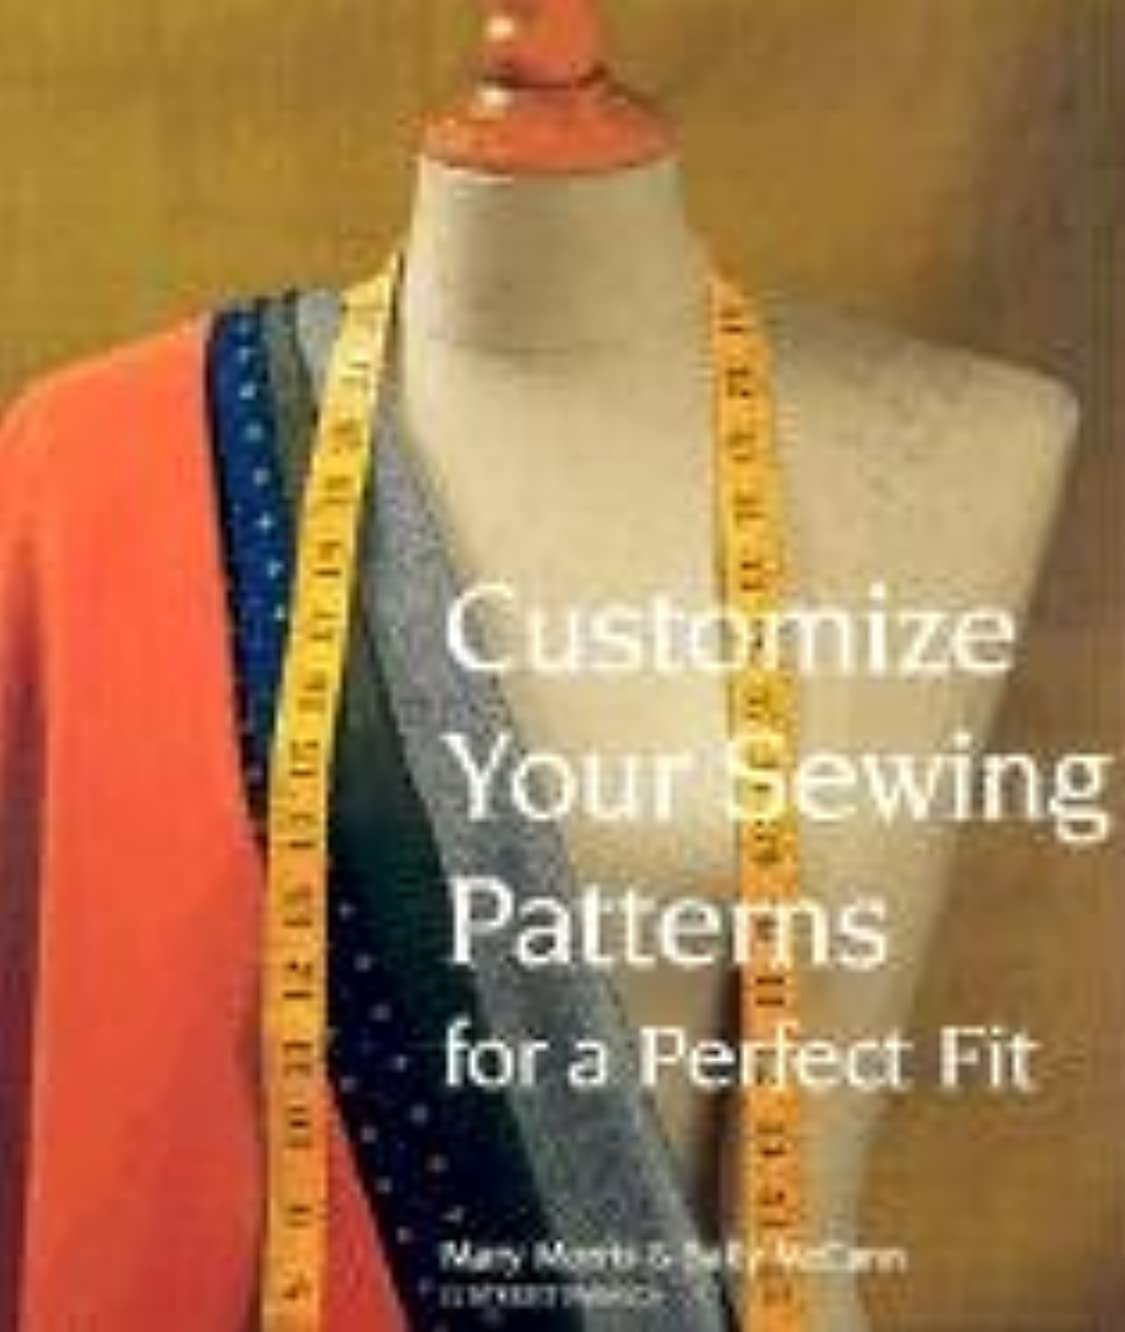 Customize Your Sewing Patterns for a Perfect Fit